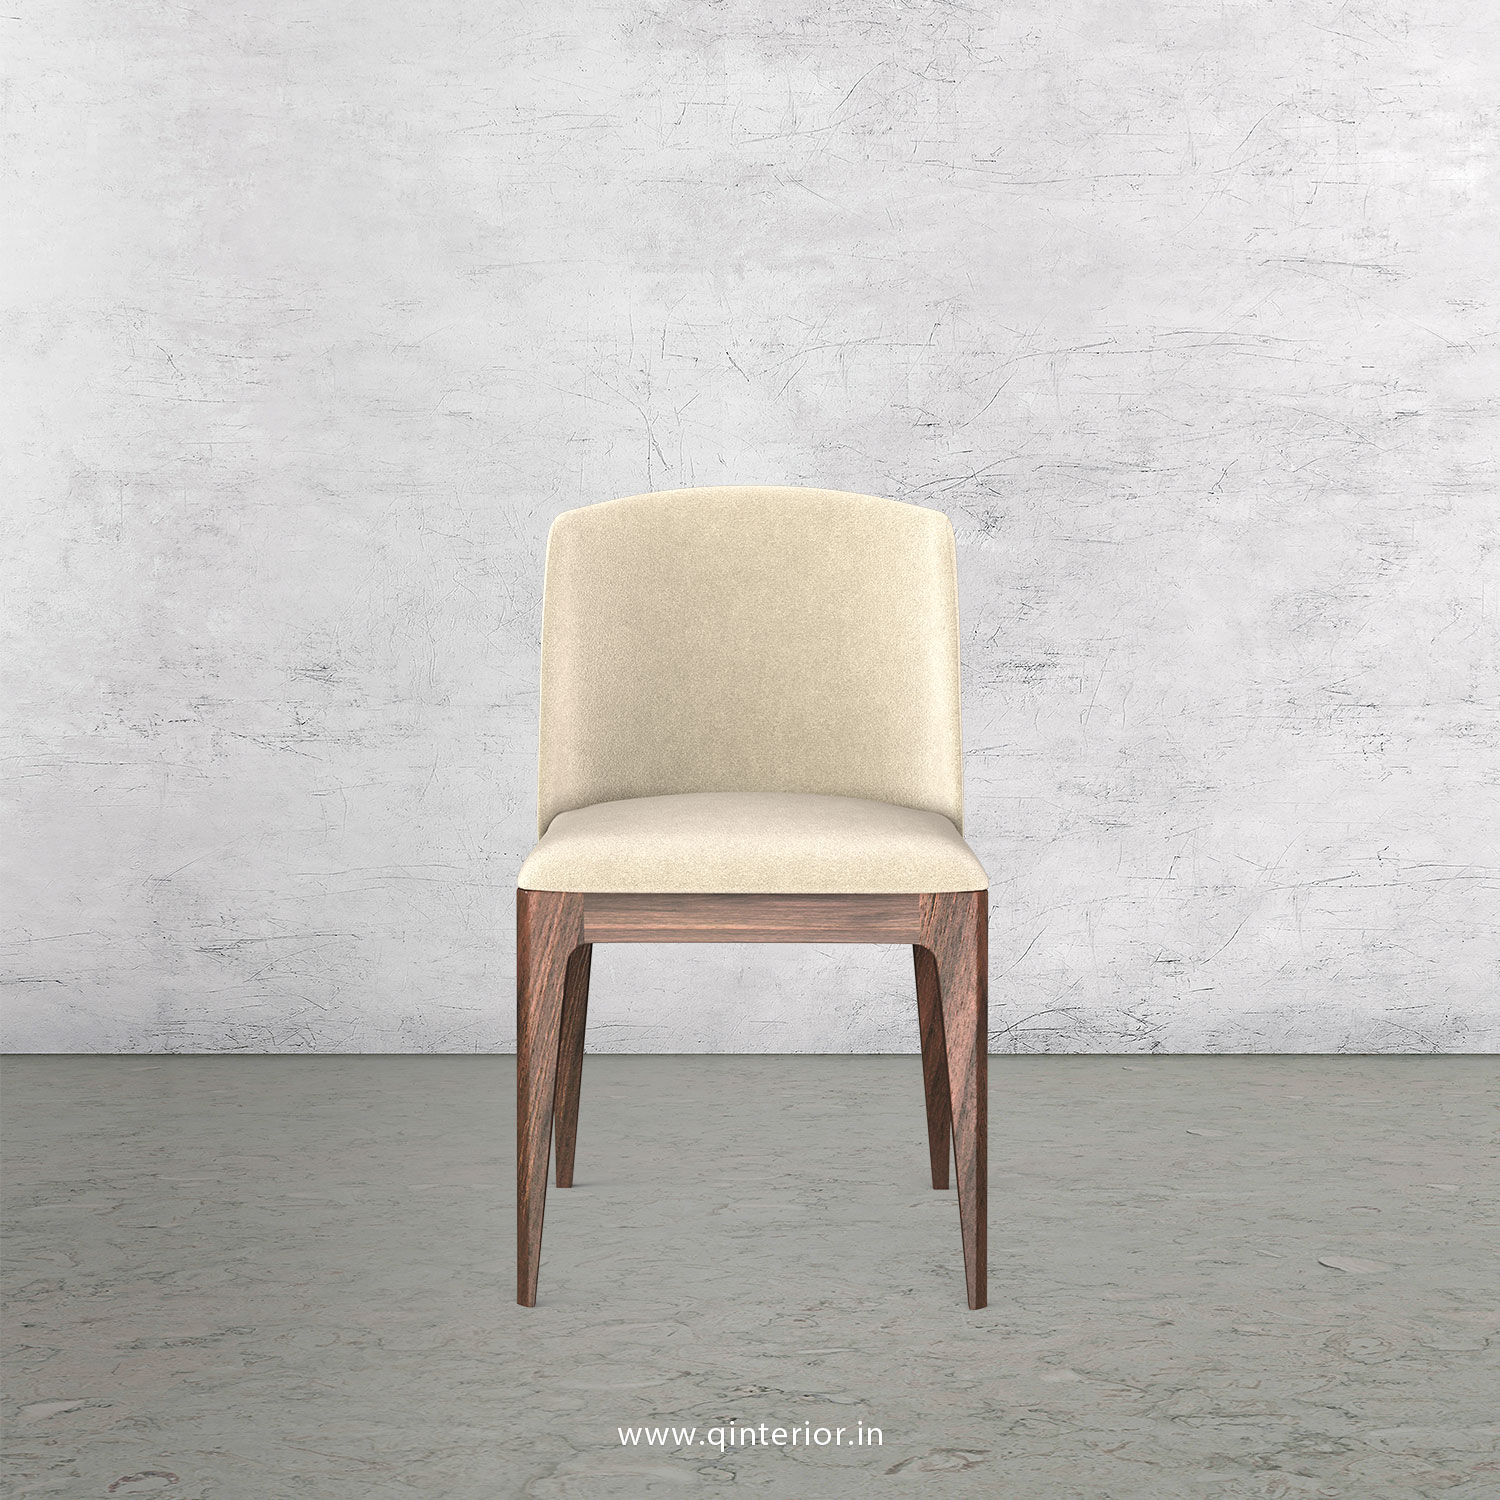 Cario Dining Chair in Velvet Fabric - DCH001 VL01